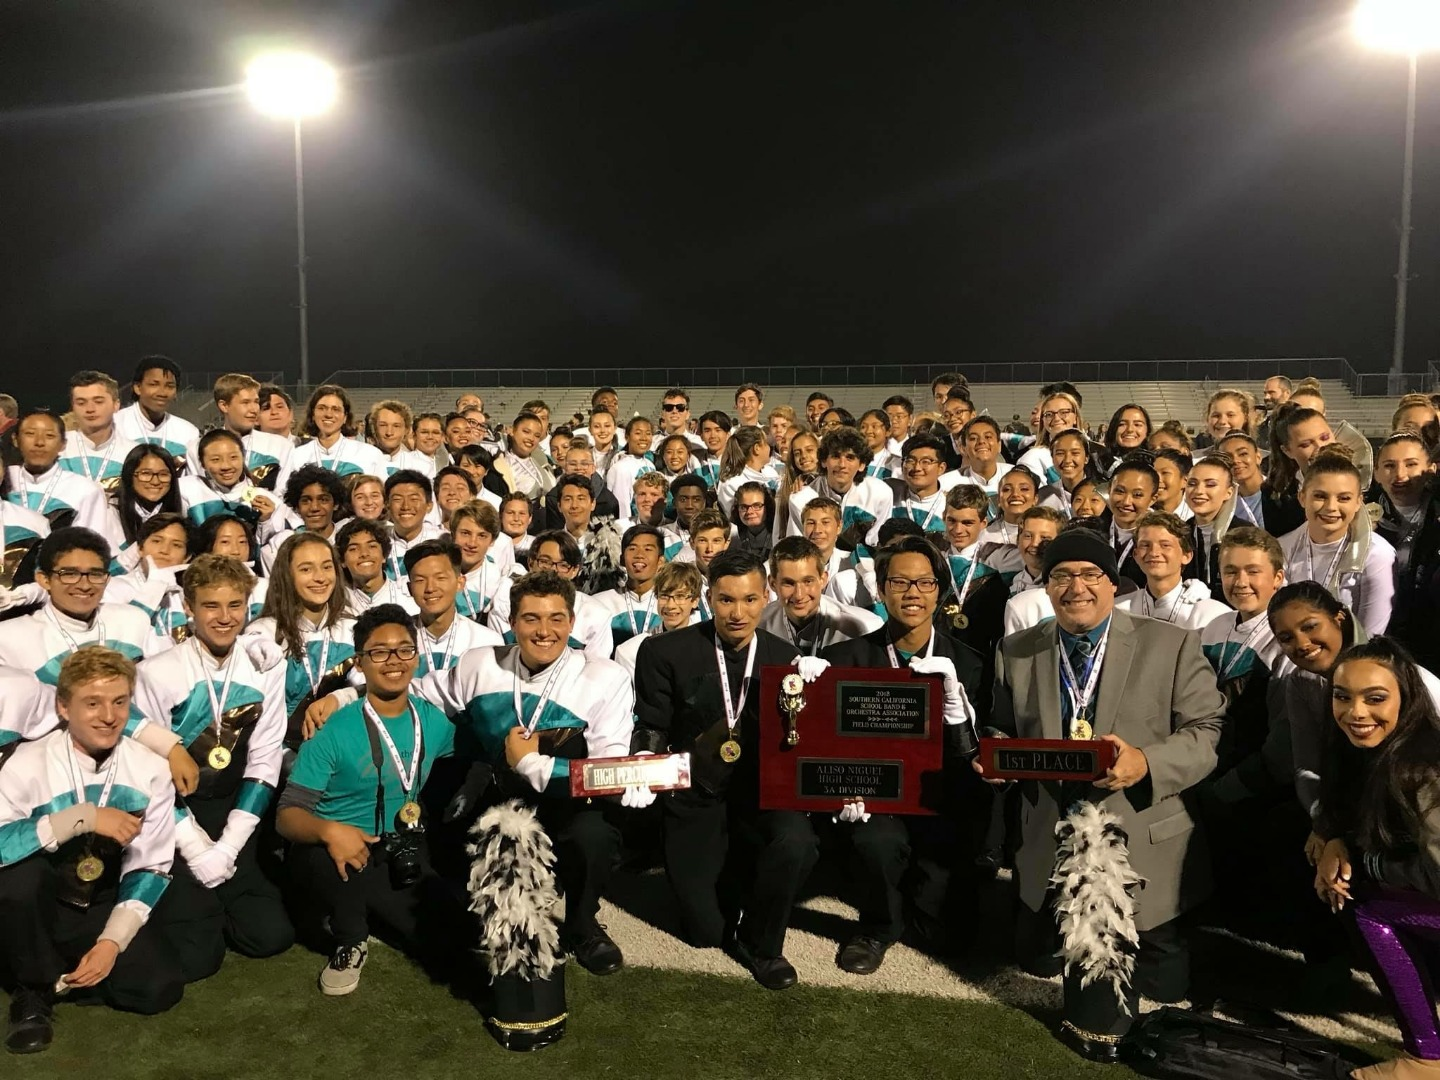 marching band on the field with all their sweepstakes awards